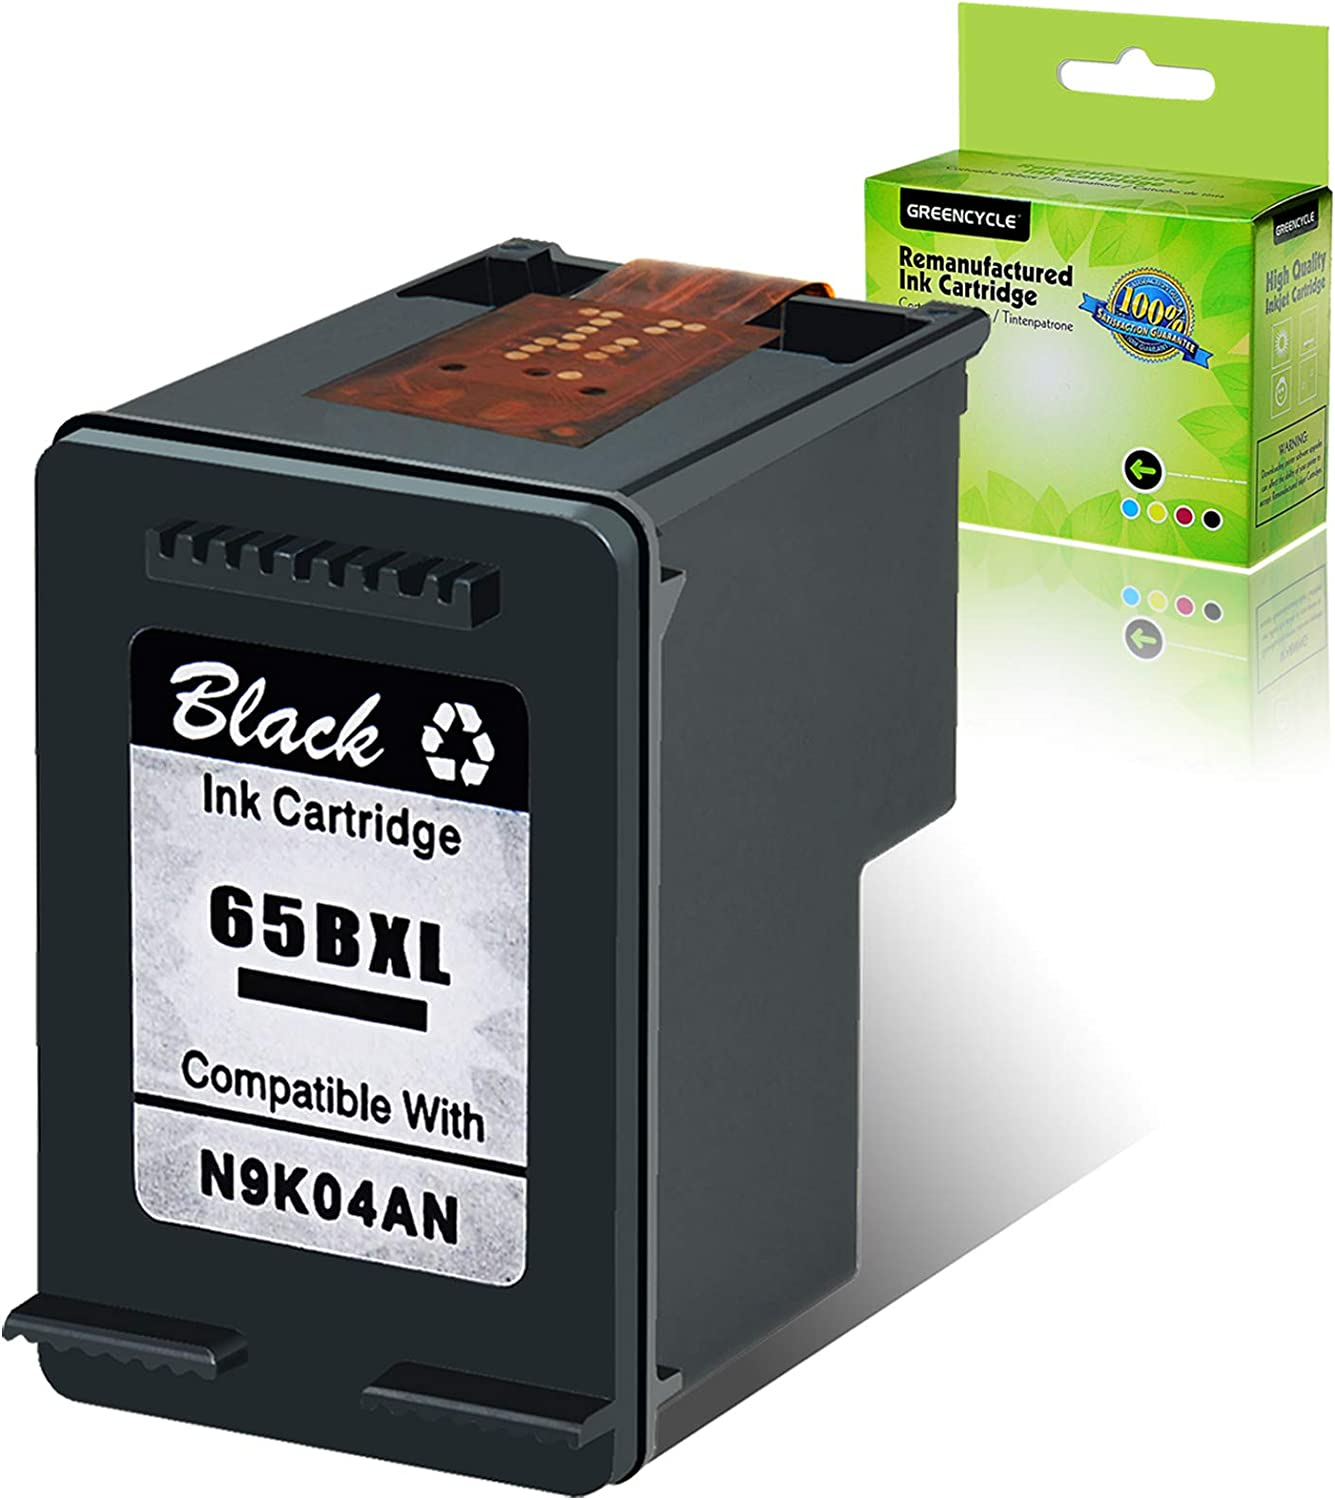 GREENCYCLE Re-Manufactured 65XL 65 XL Ink Cartridge Compatible for HP Envy 5055 5052 5058 Deskjet 2655 2652 2622 3720 3730 3752 3758 All-in-One Printer, with New Version chip (Black, 1 Pack)